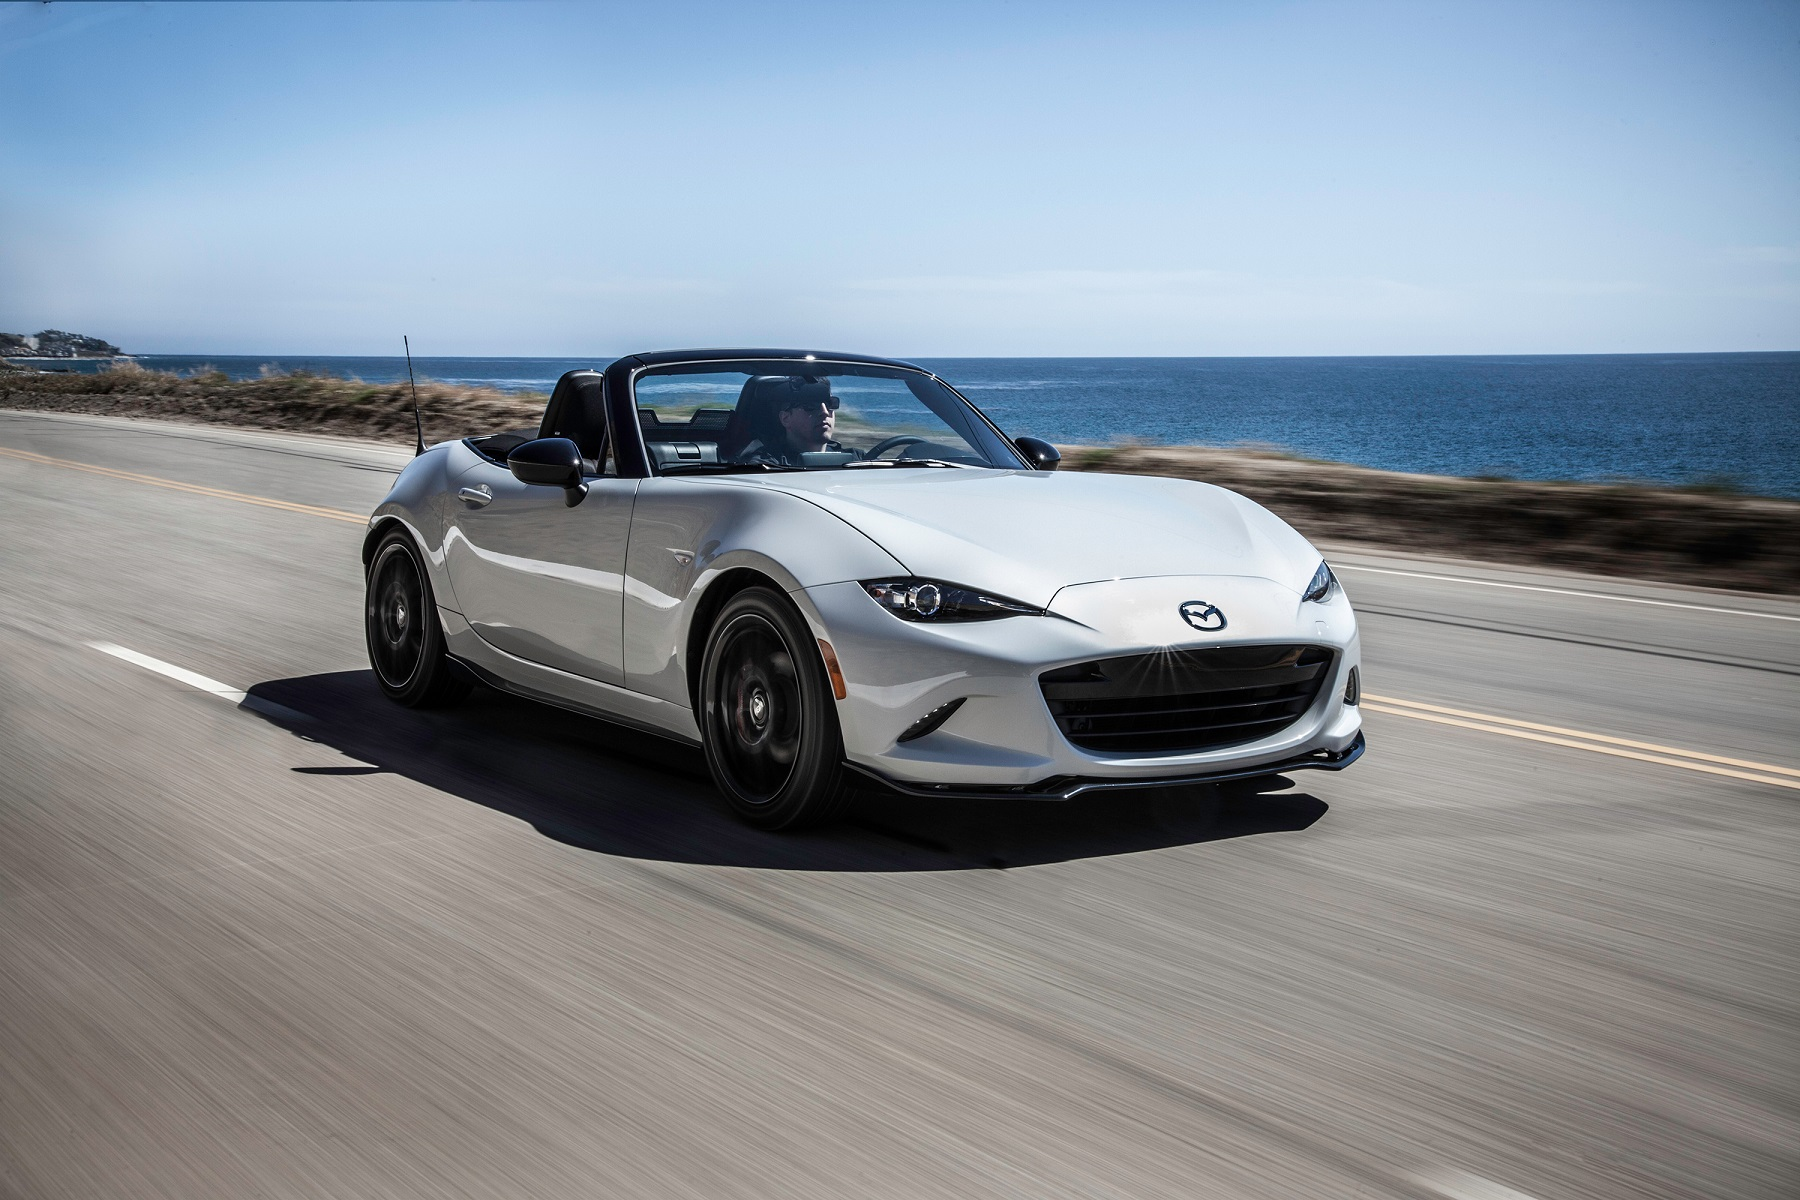 Manufacturer photo: Lightweight, nimble and fun to drive, the fourth-generation 2016 Mazda MX-5 draws inspiration from MX-5s that came before it, pairing the driver as one with the car